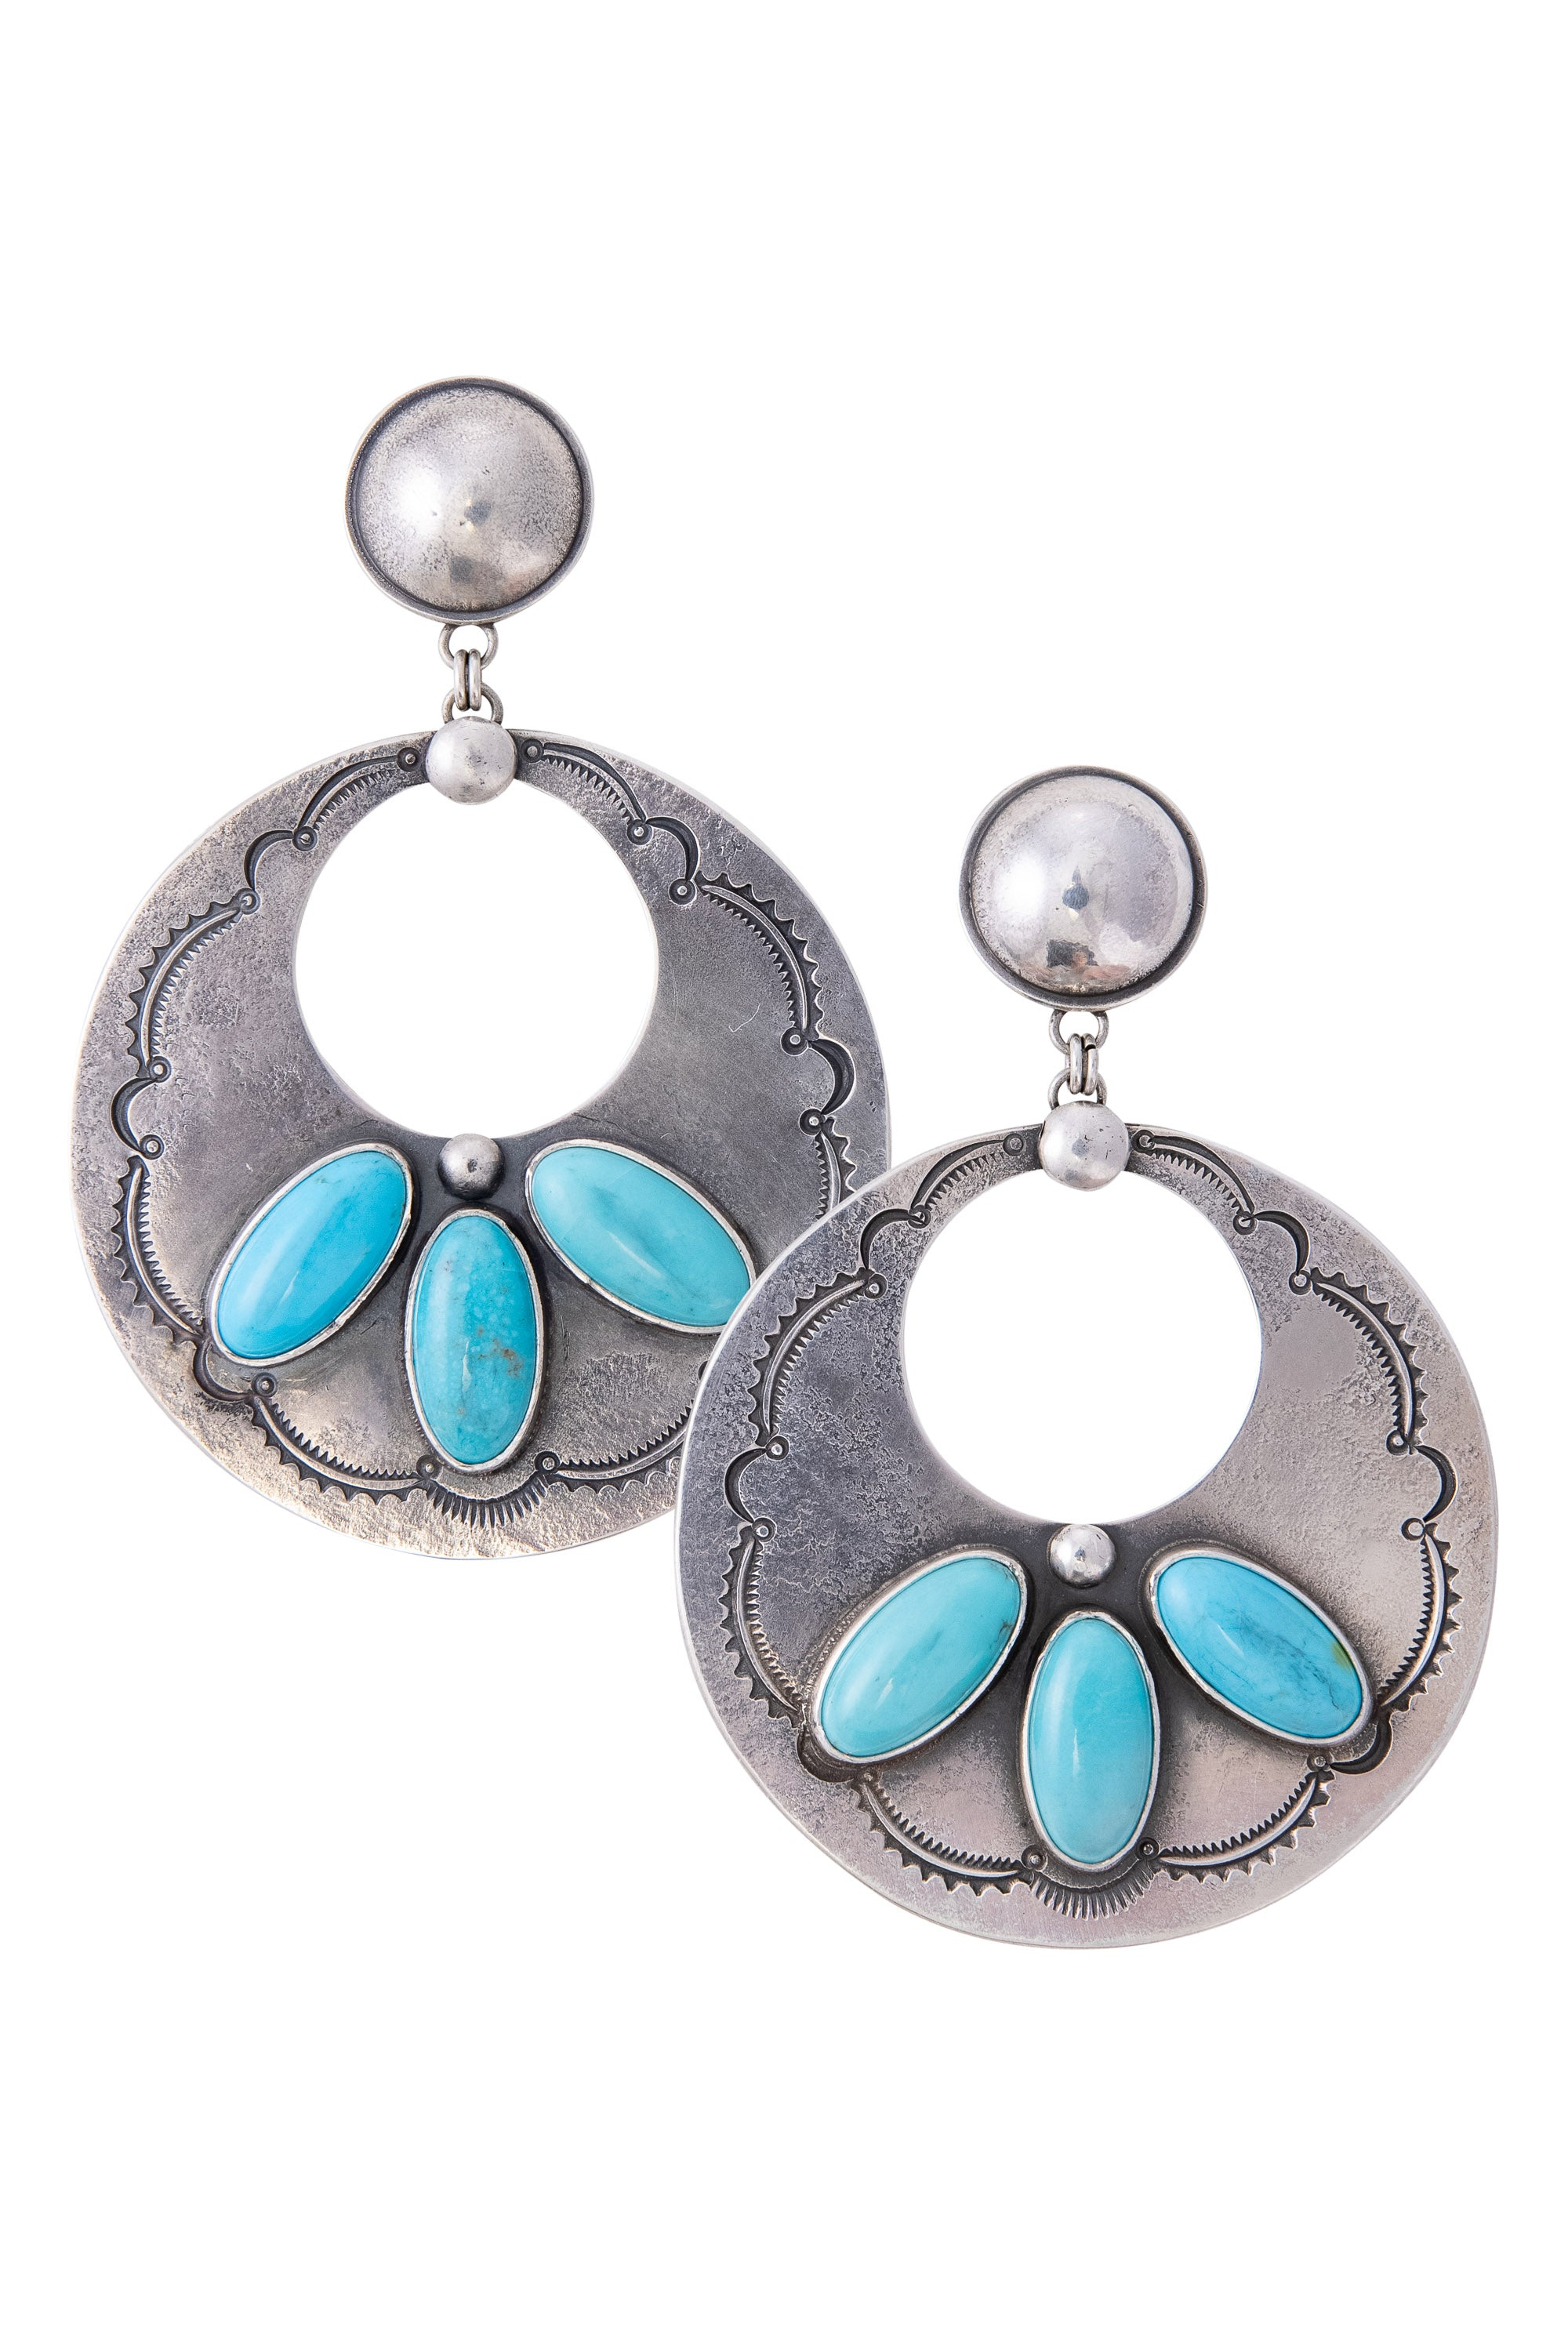 Earrings, Hoop, Turquoise, Dennis Hogan, 685